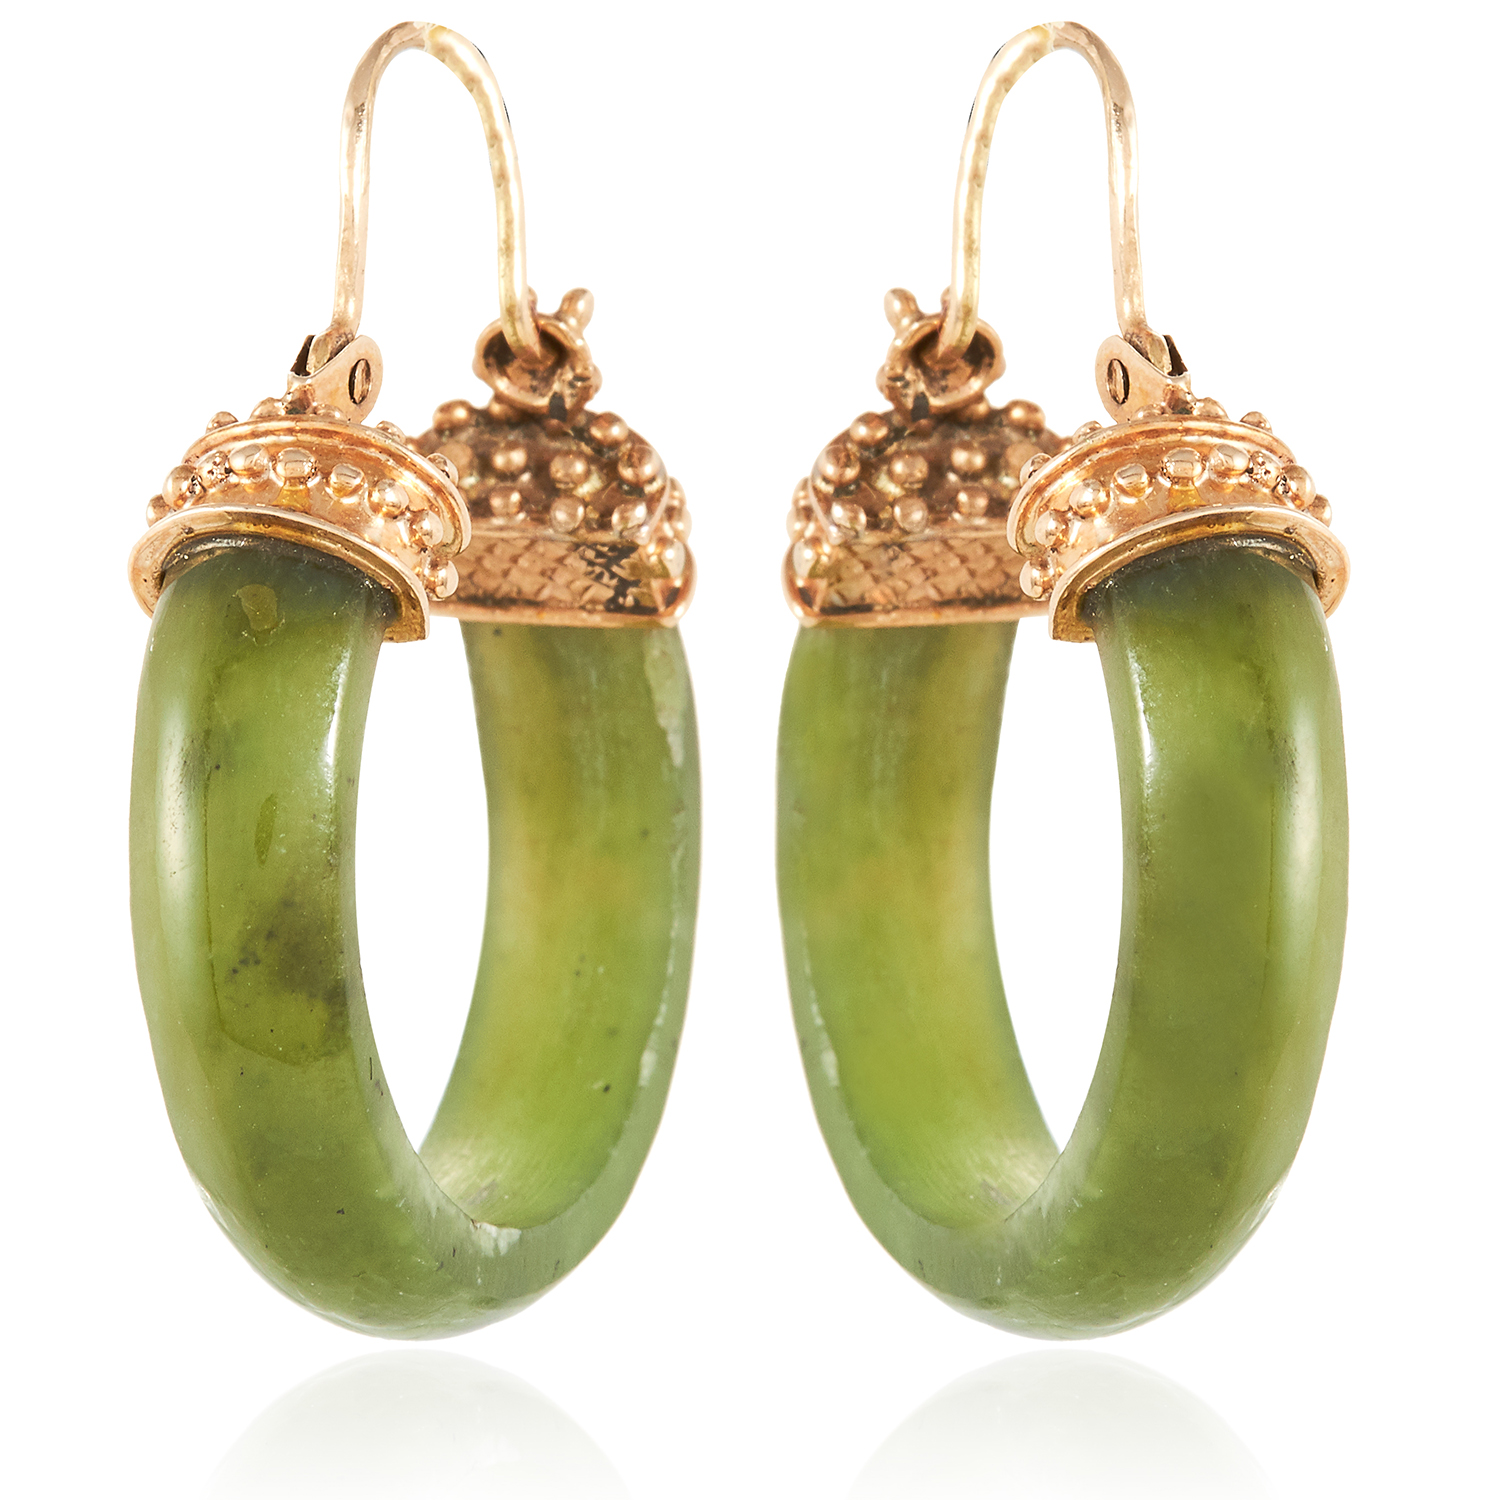 A PAIR OF ANTIQUE NEPHRITE JADE HOOP EARRINGS in yellow gold, each designed as a polished hoop of